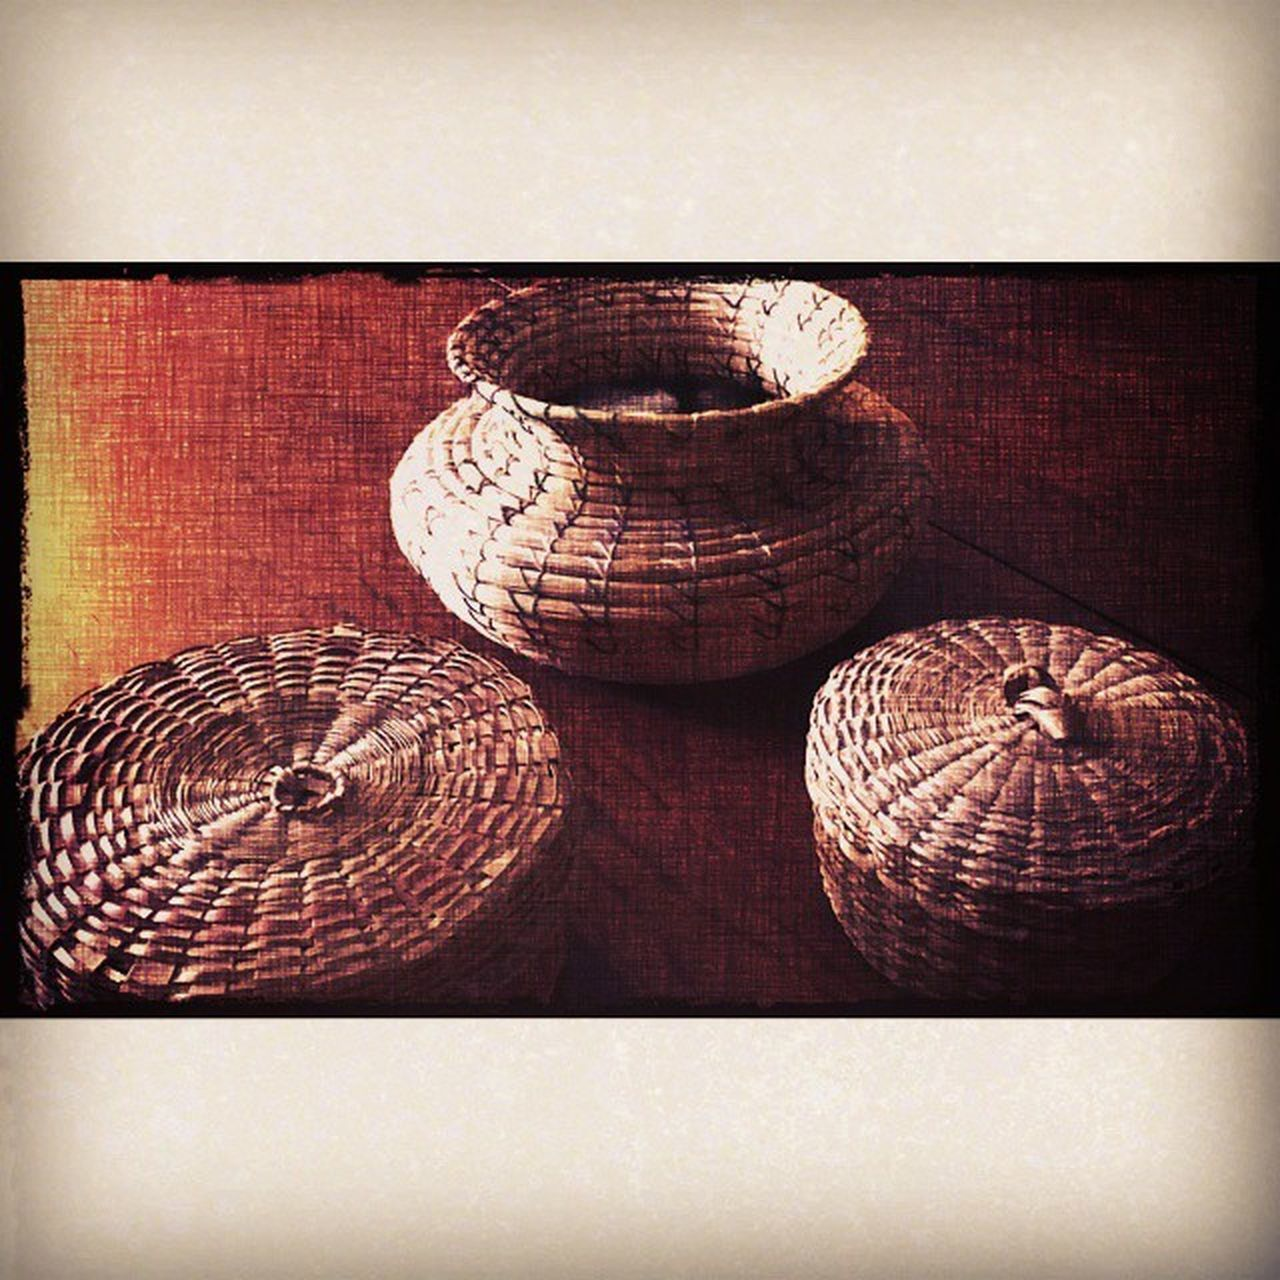 Basketry Baskets Native American Indian Native American Art Native Heritage